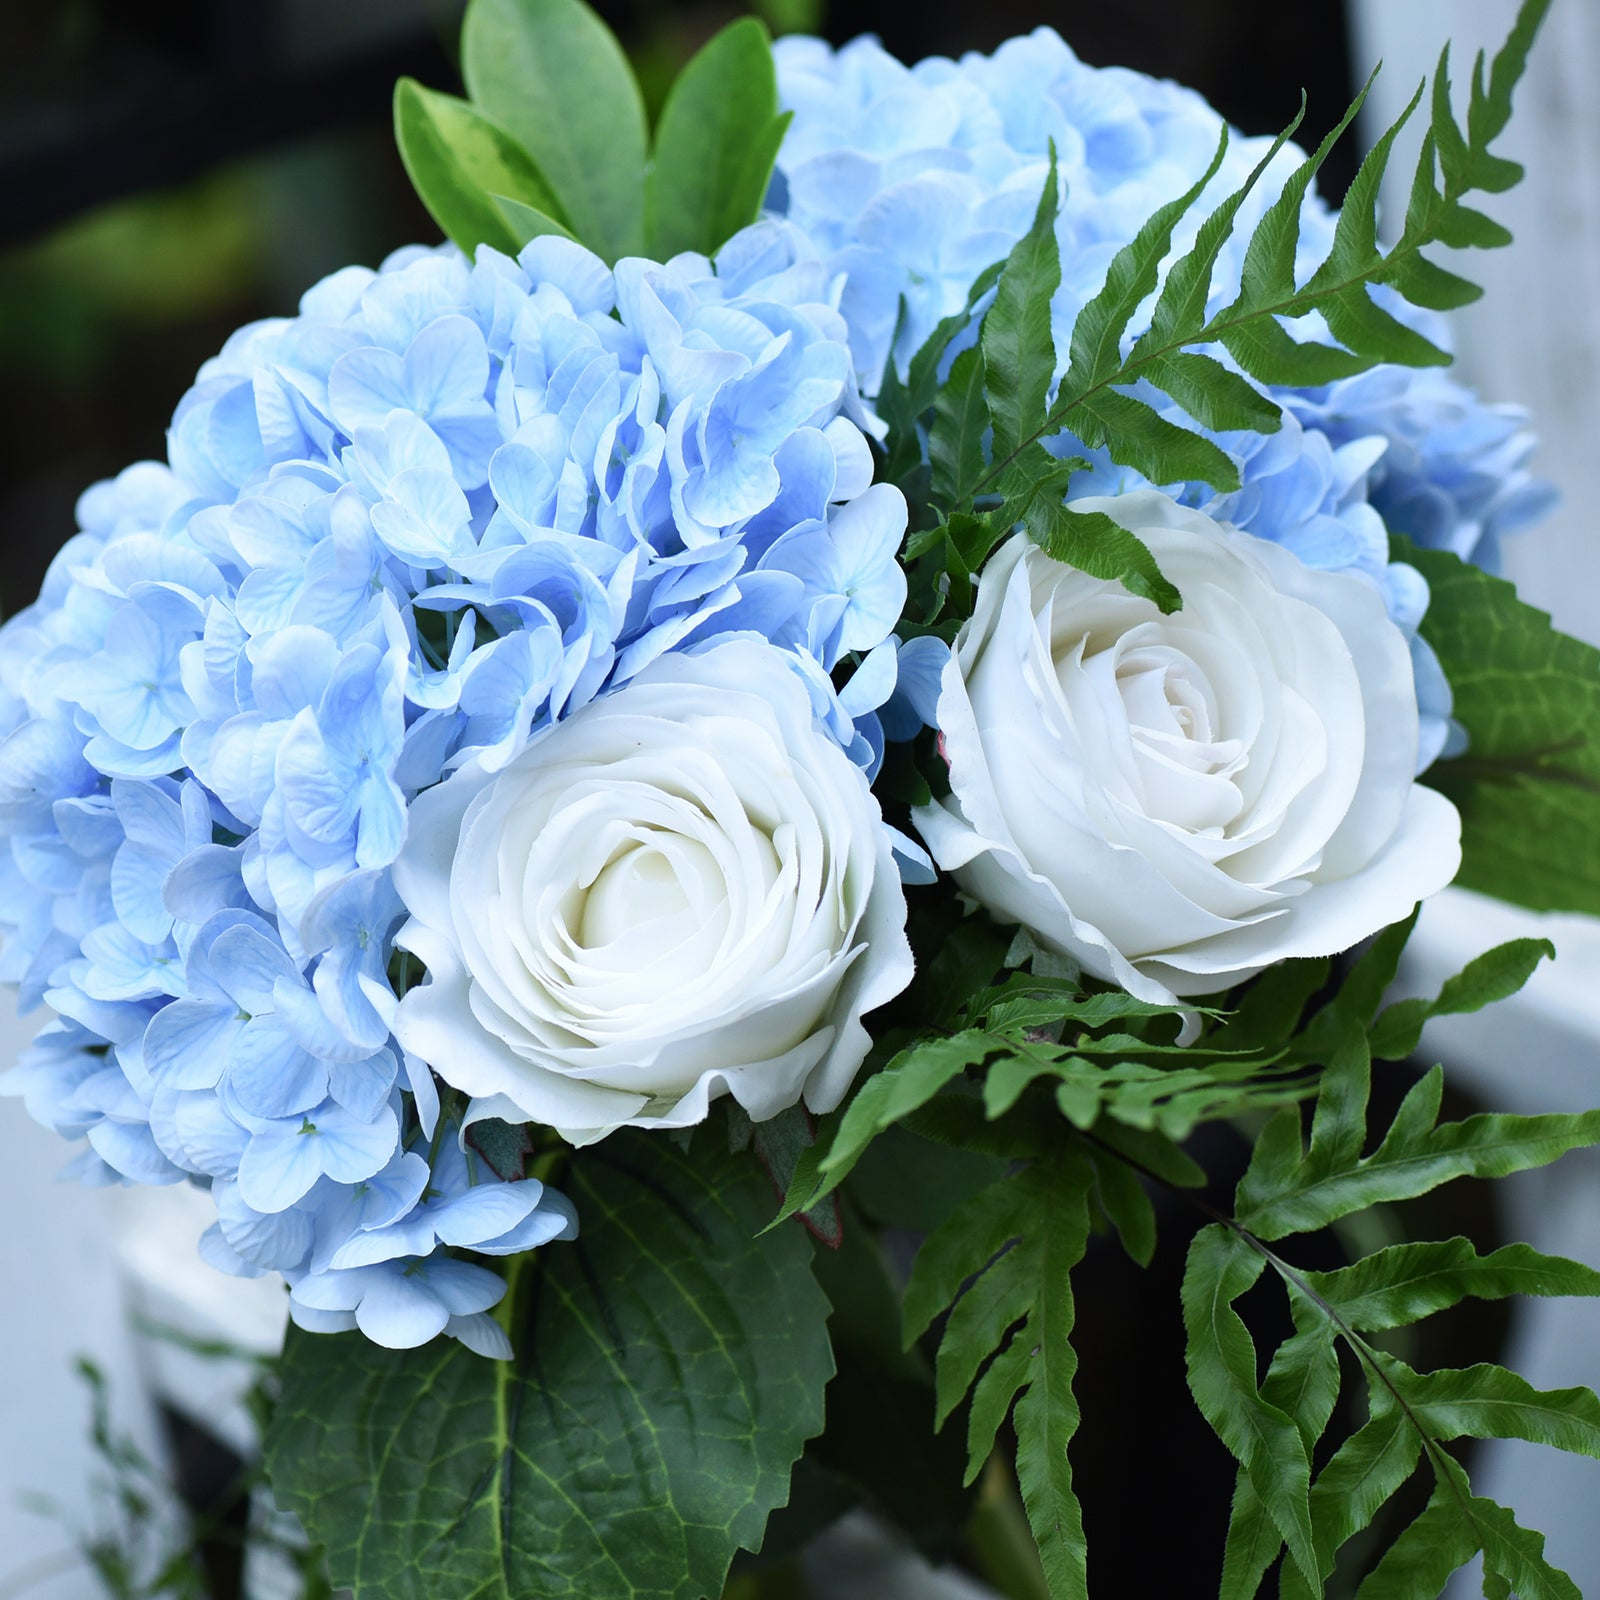 Fiveseasonstuff 2 Stems Real Touch Petals And Leaves Artificial Hydran